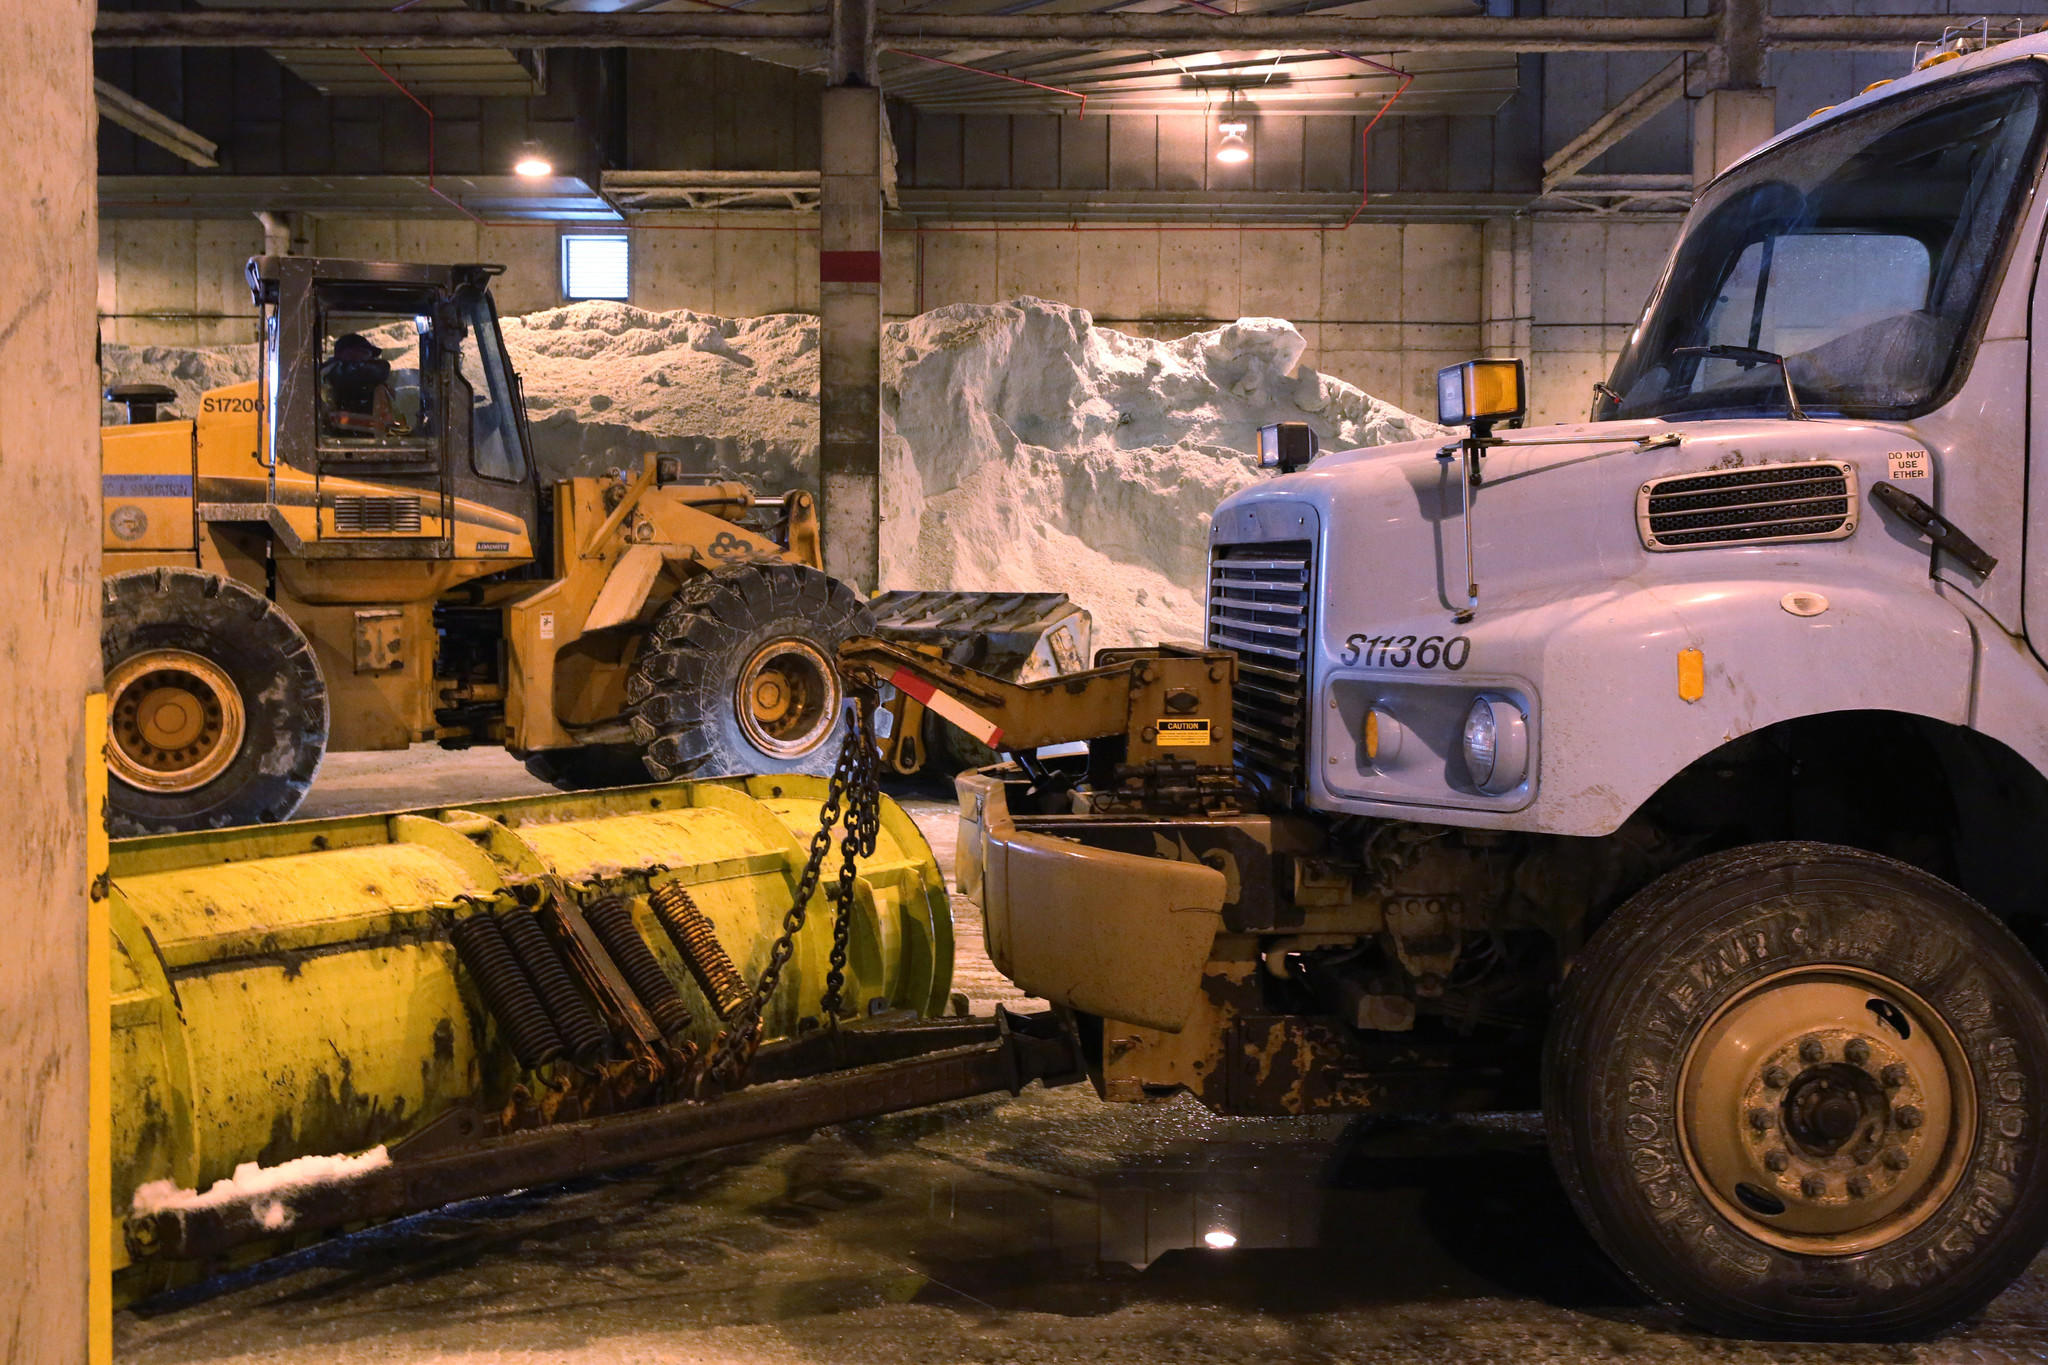 A snow plow sits at the ready prior to a press event with Mayor Rahm Emanuel Saturday, Feb. 1, 2014 at the McCormick Place indoor salt pile in Chicago.